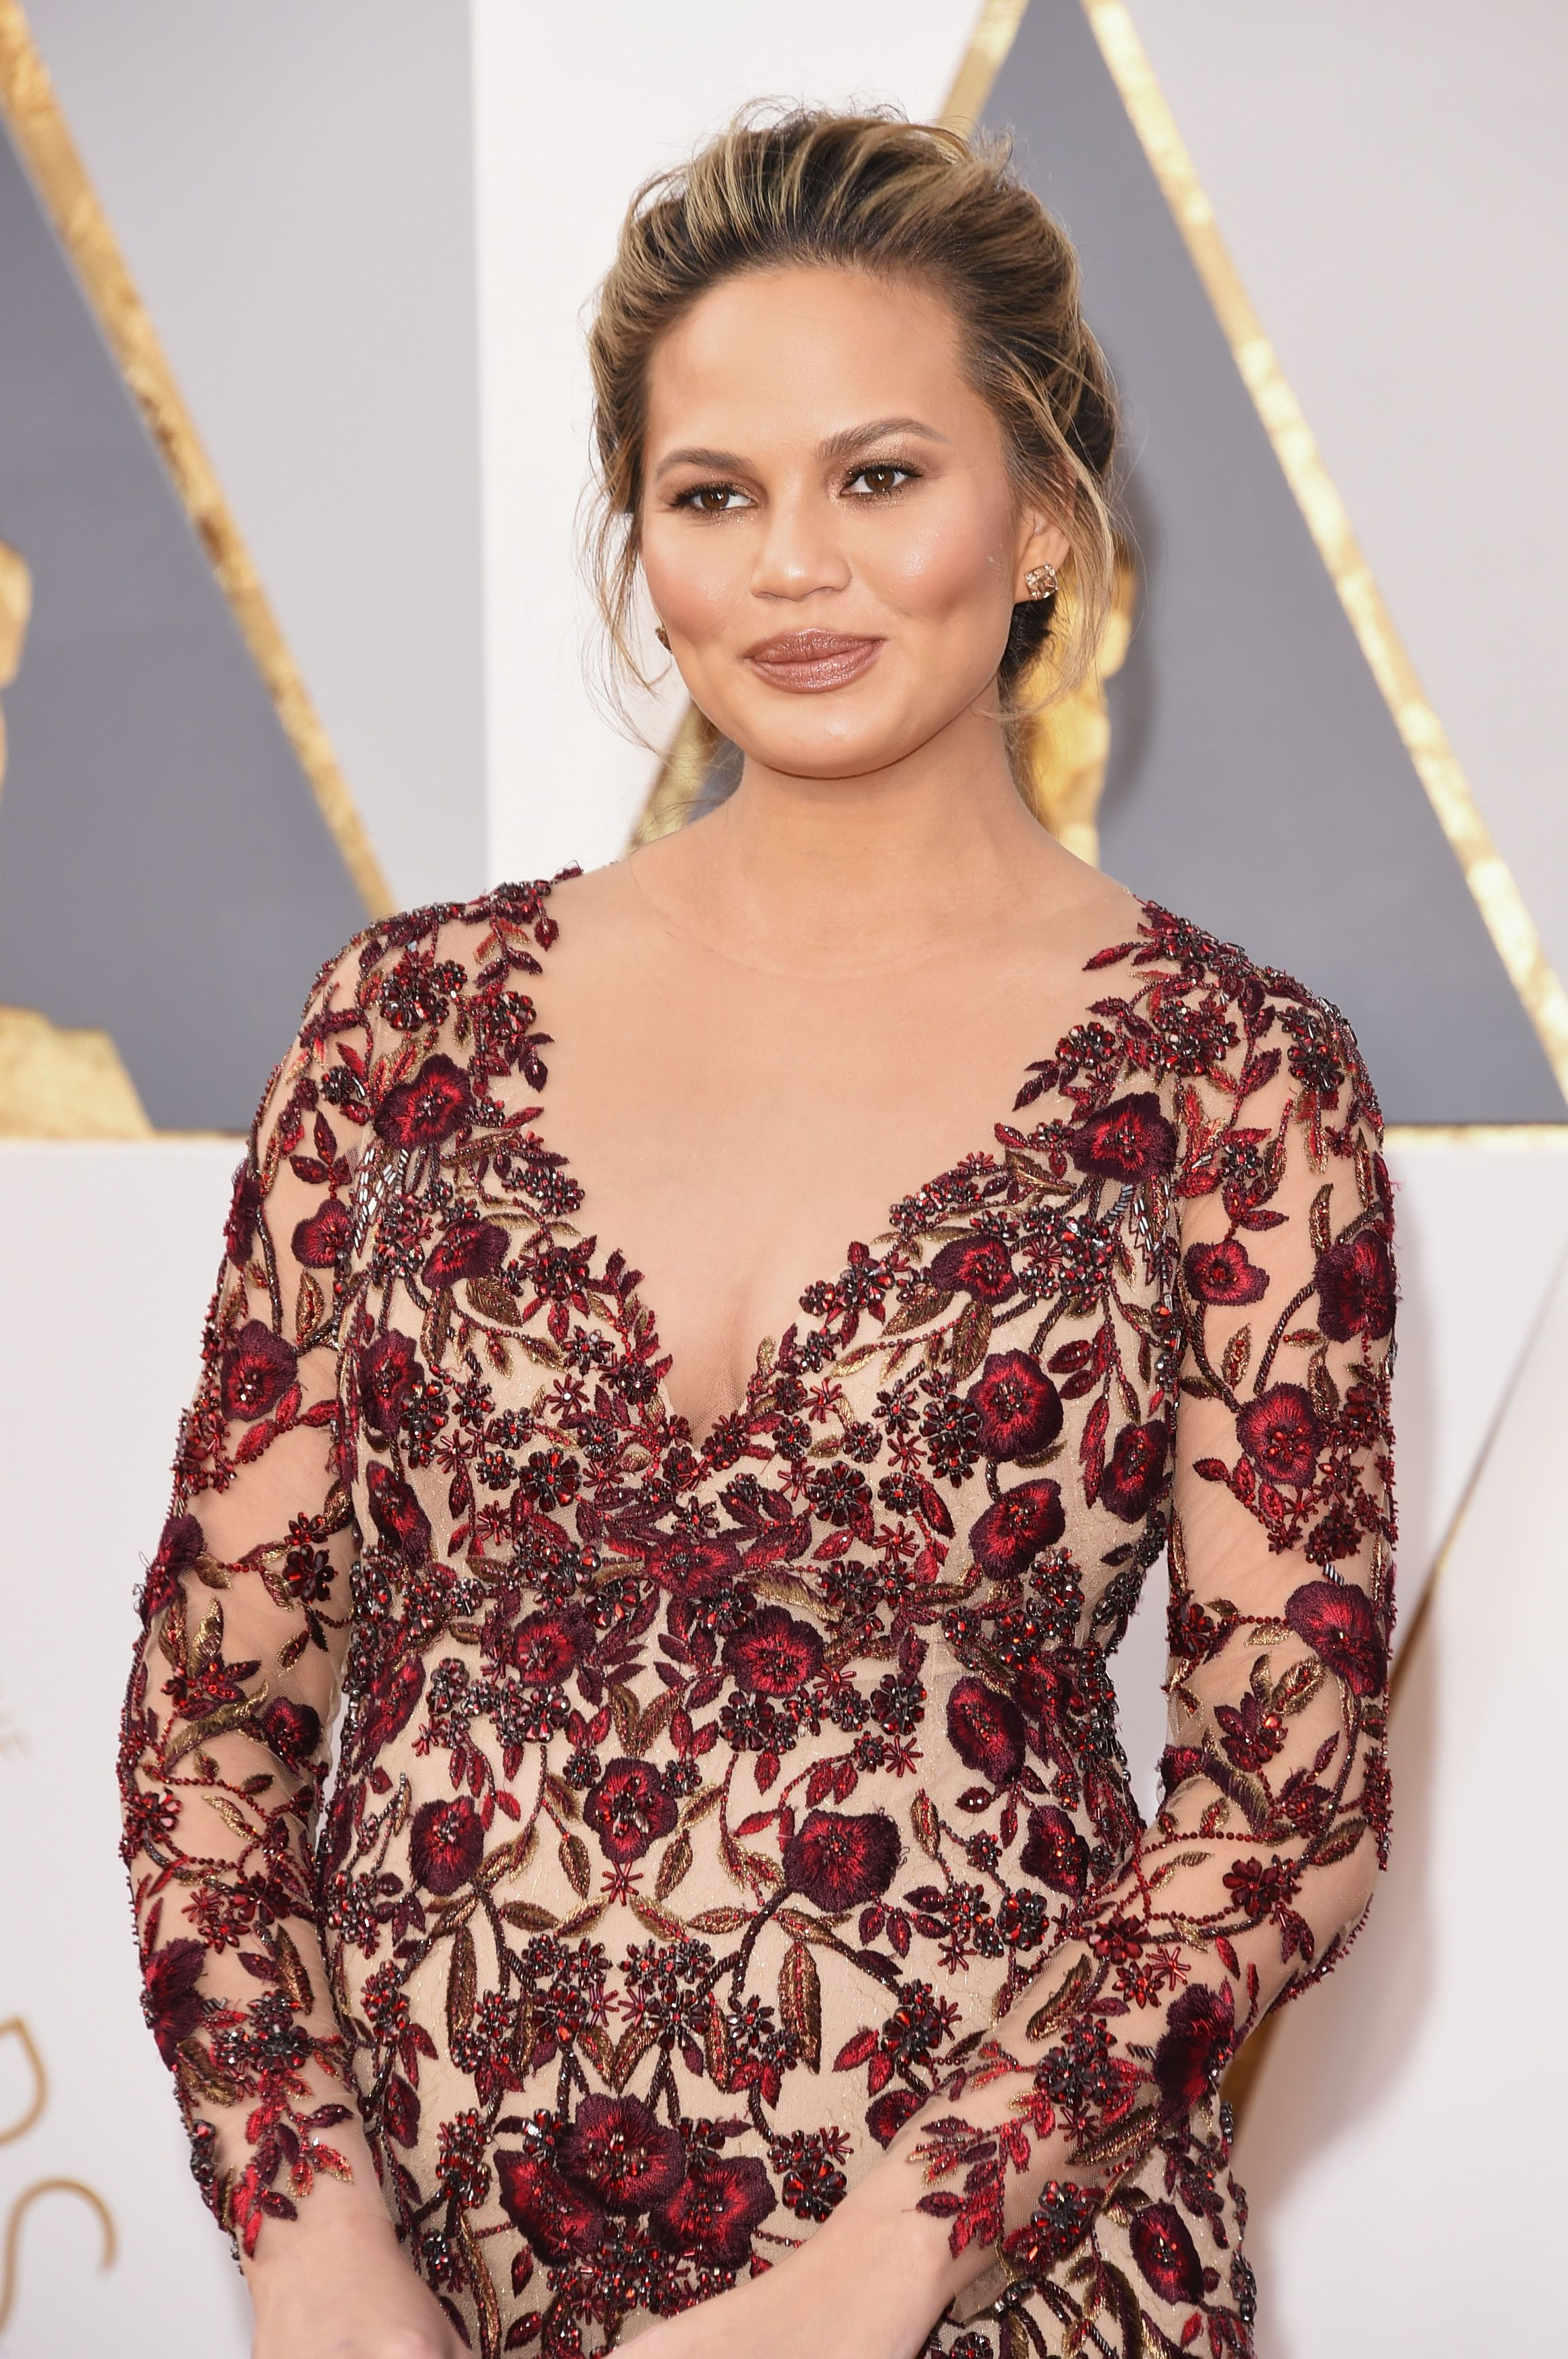 Chrissy Teigen at the Annual Academy Awards on February 28, 2016 in Hollywood. | Photo: Getty Images